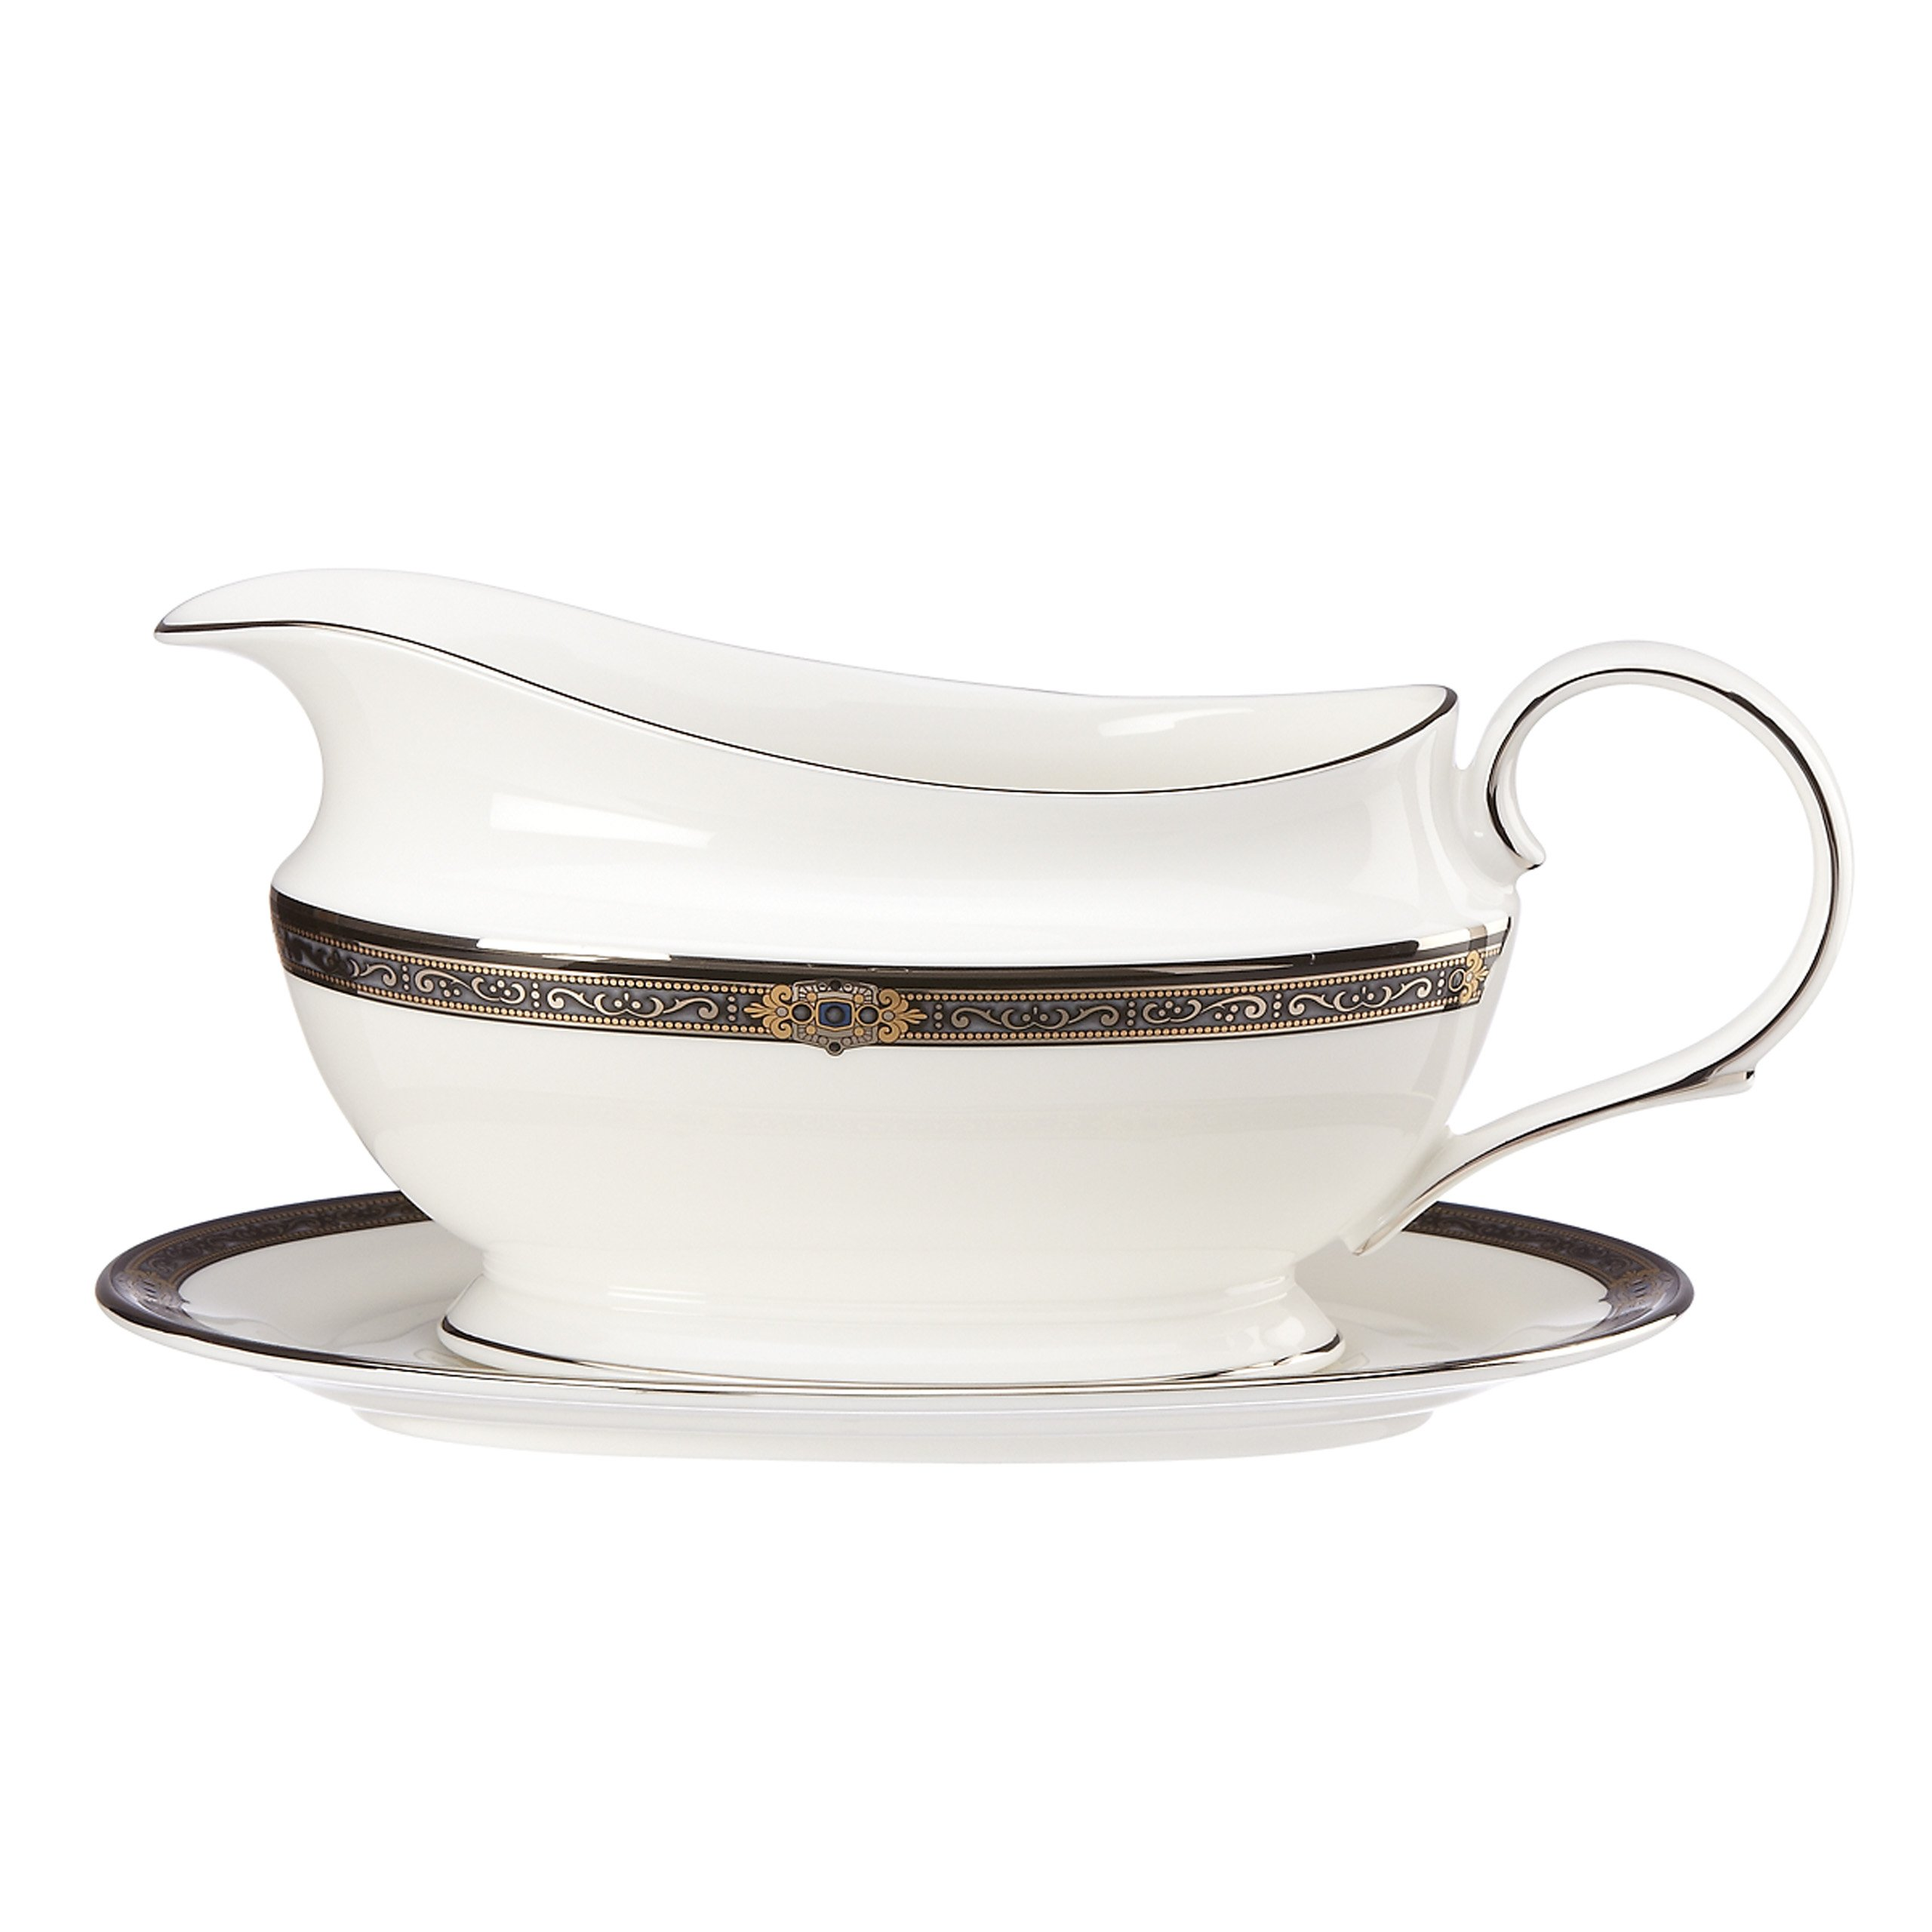 Lenox Vintage Jewel Sauce Boat and Stand, White by Lenox